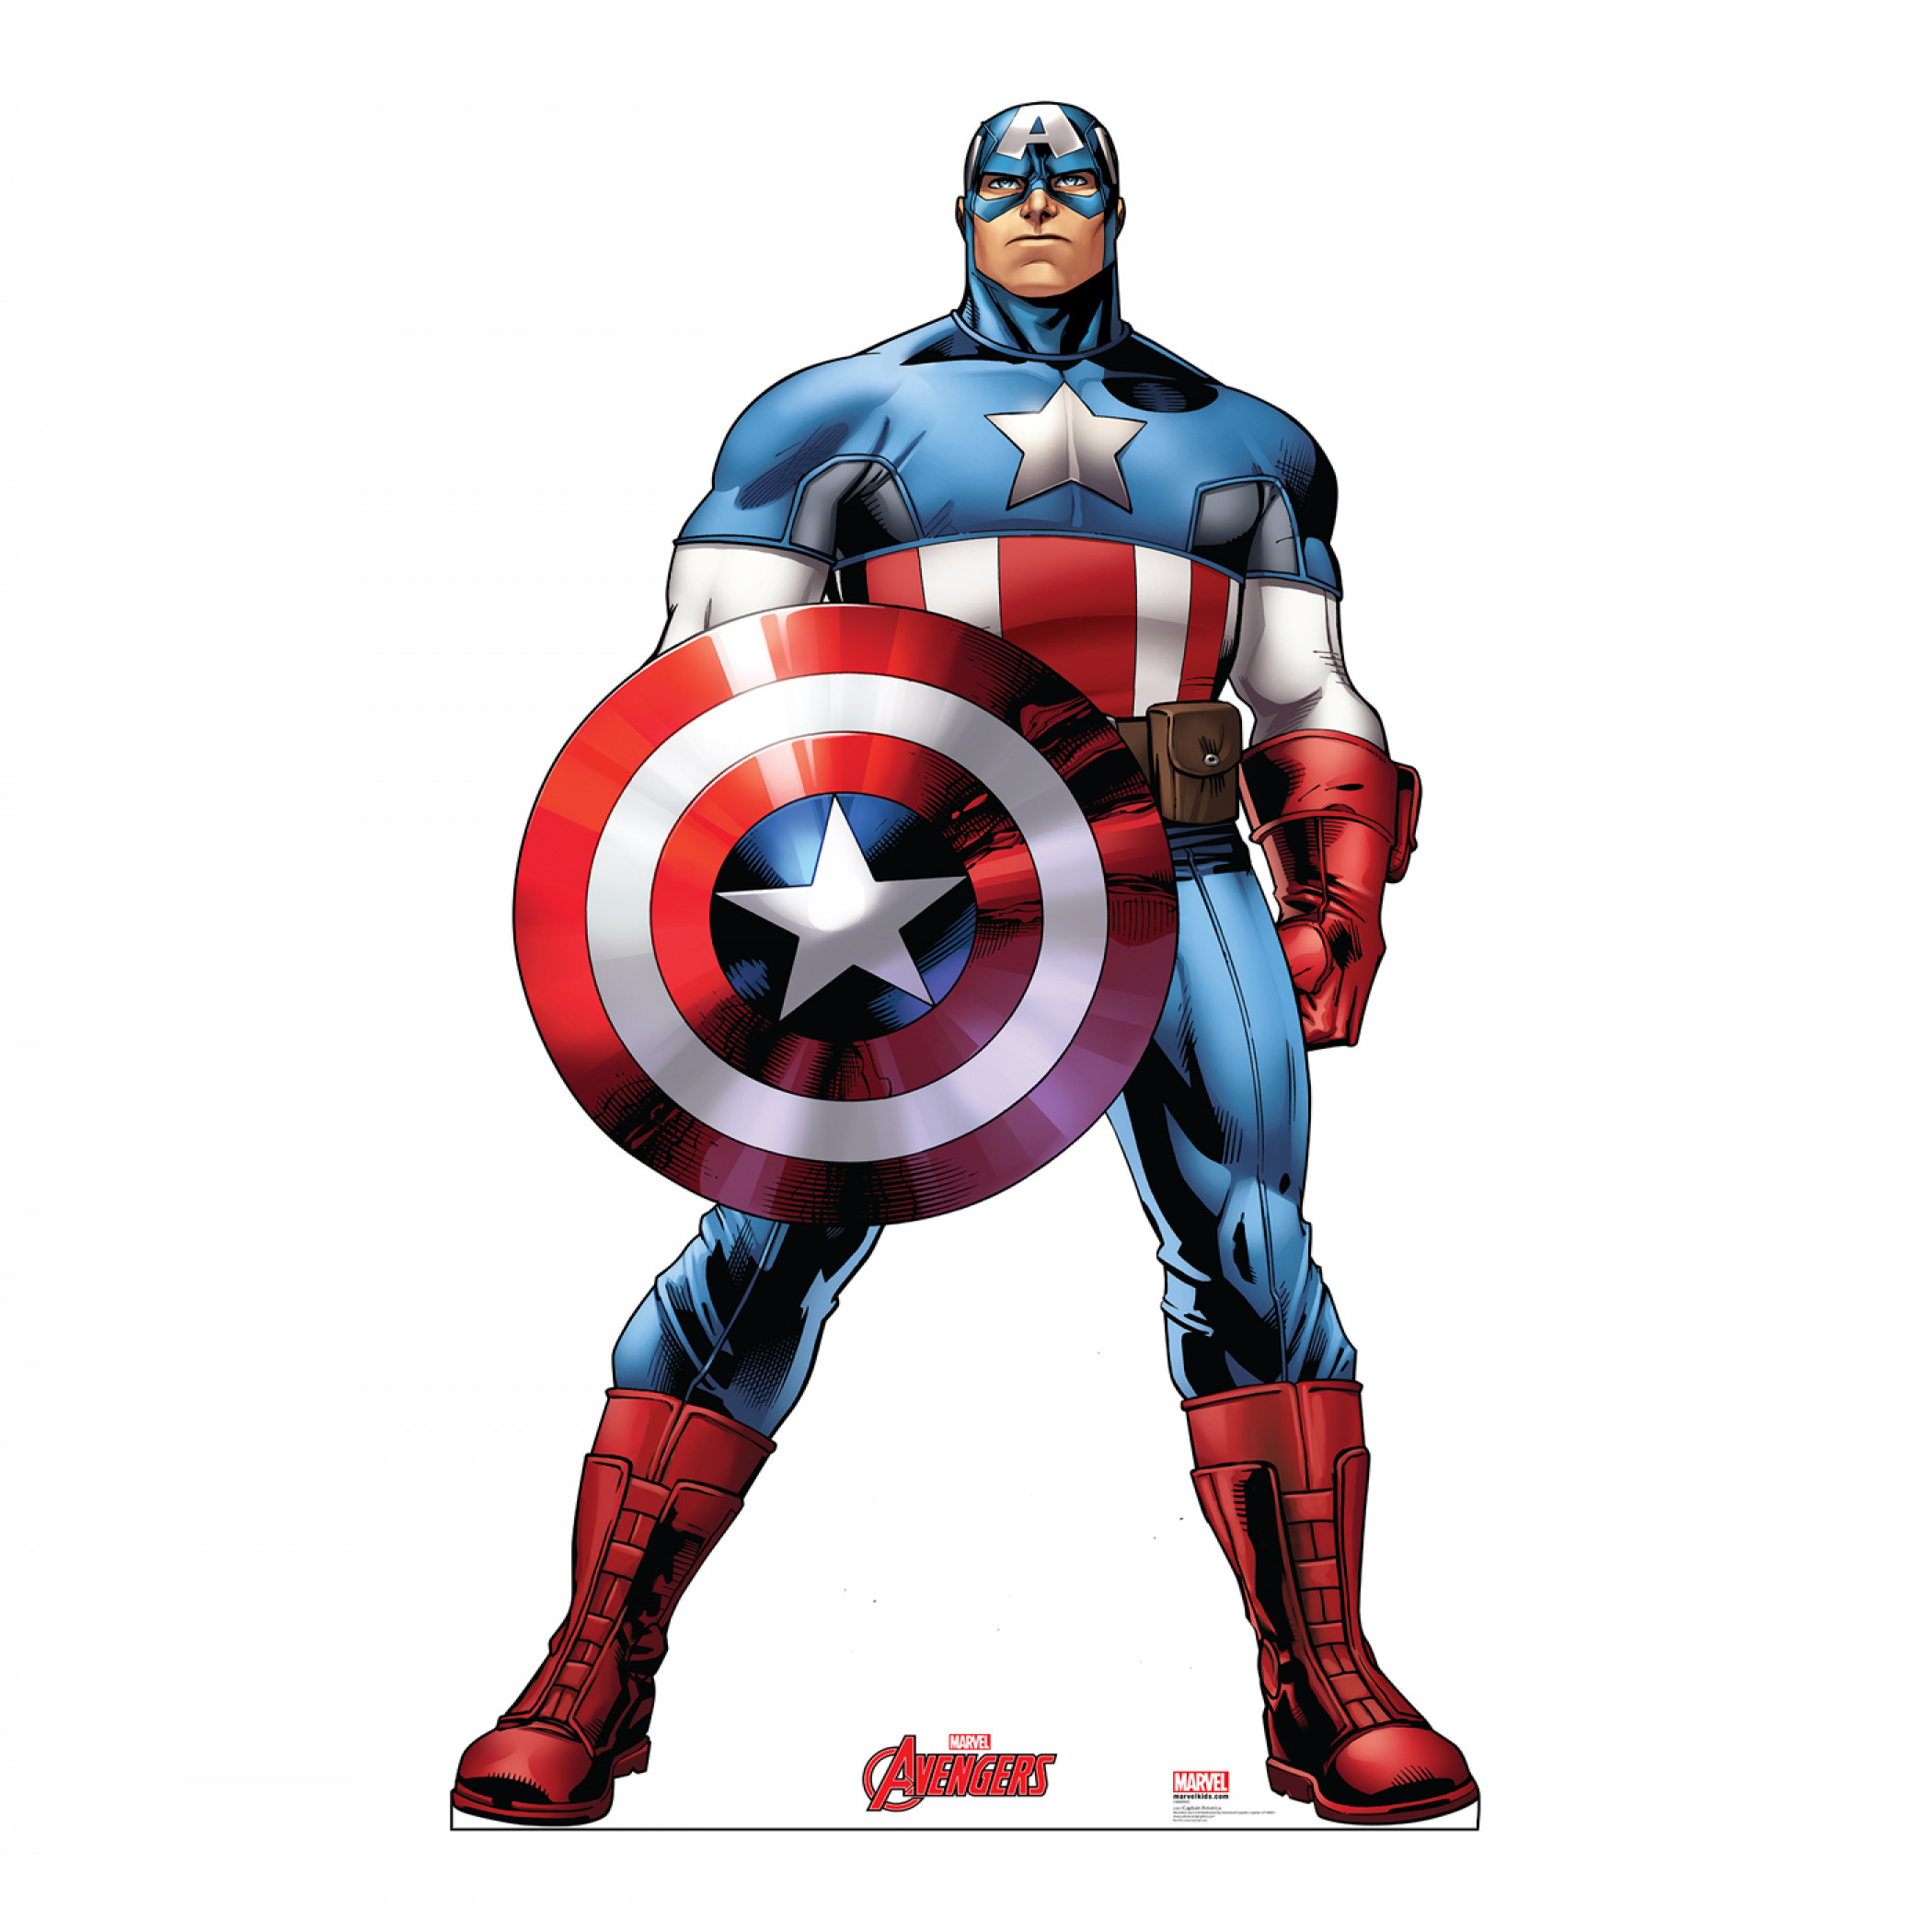 Avengers Animated Captain America Cardboard Stand Up